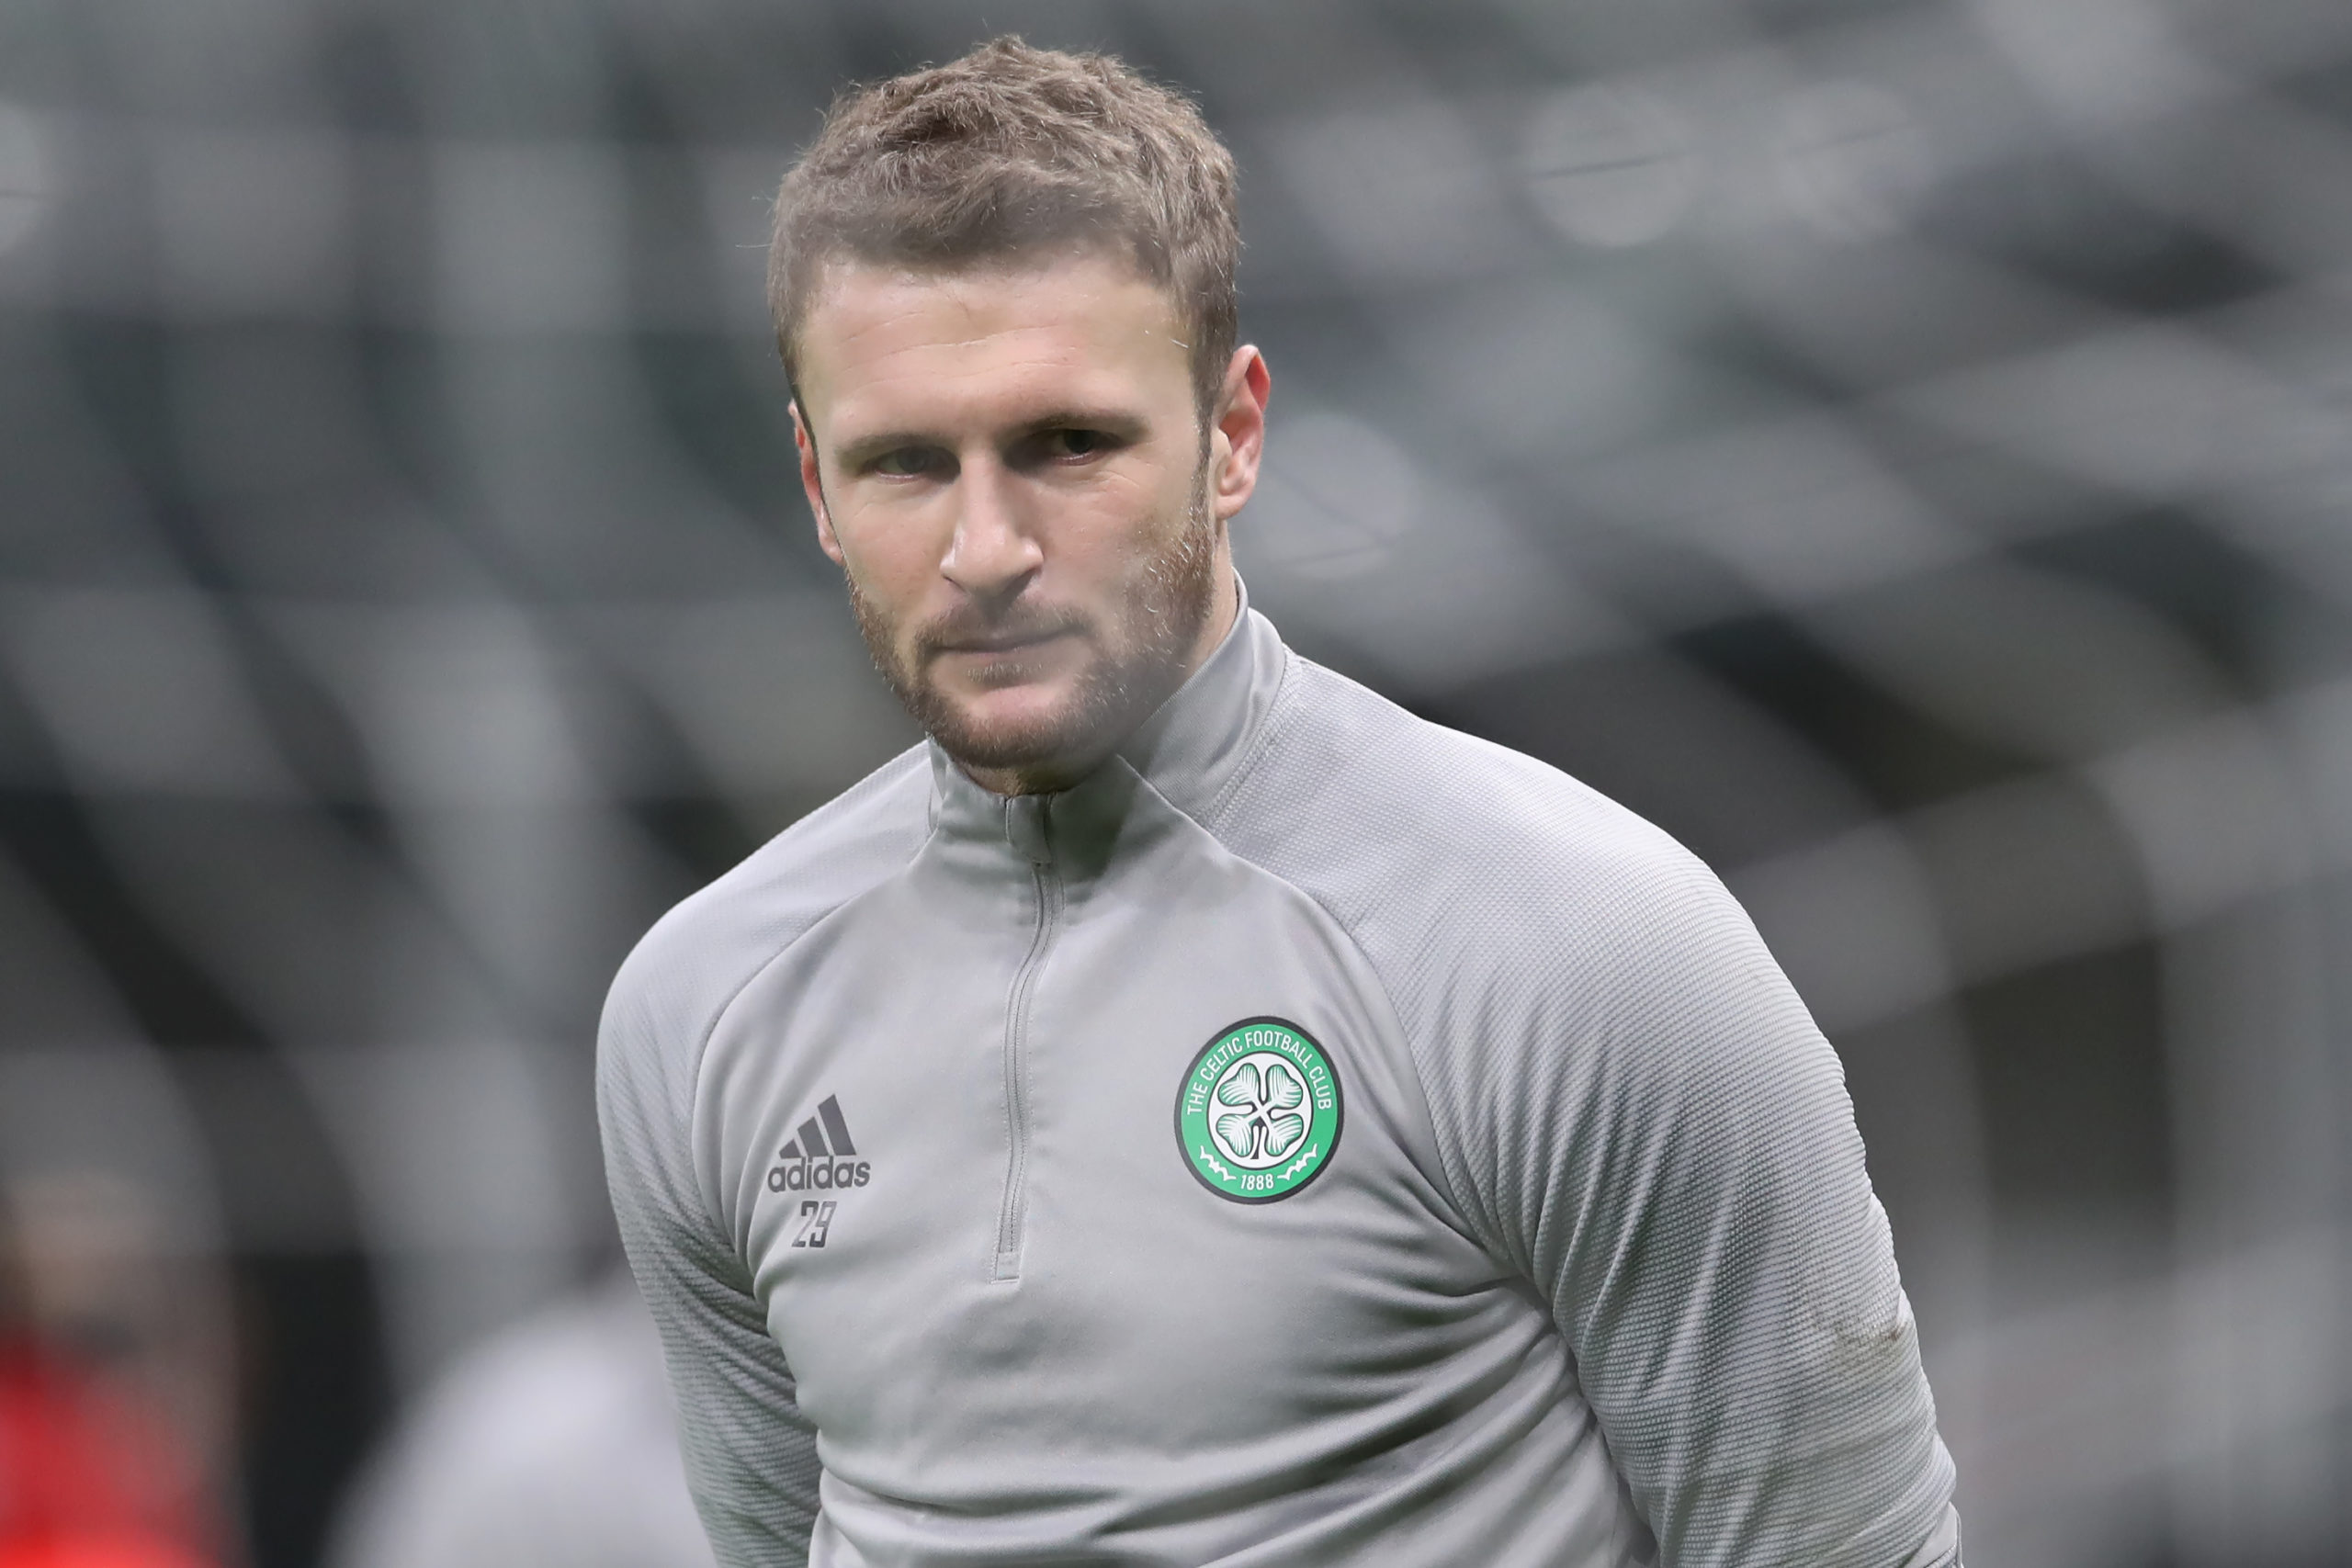 Scott Bain's is one of several Celtic careers that could use a boost in Sunday's Glasgow derby